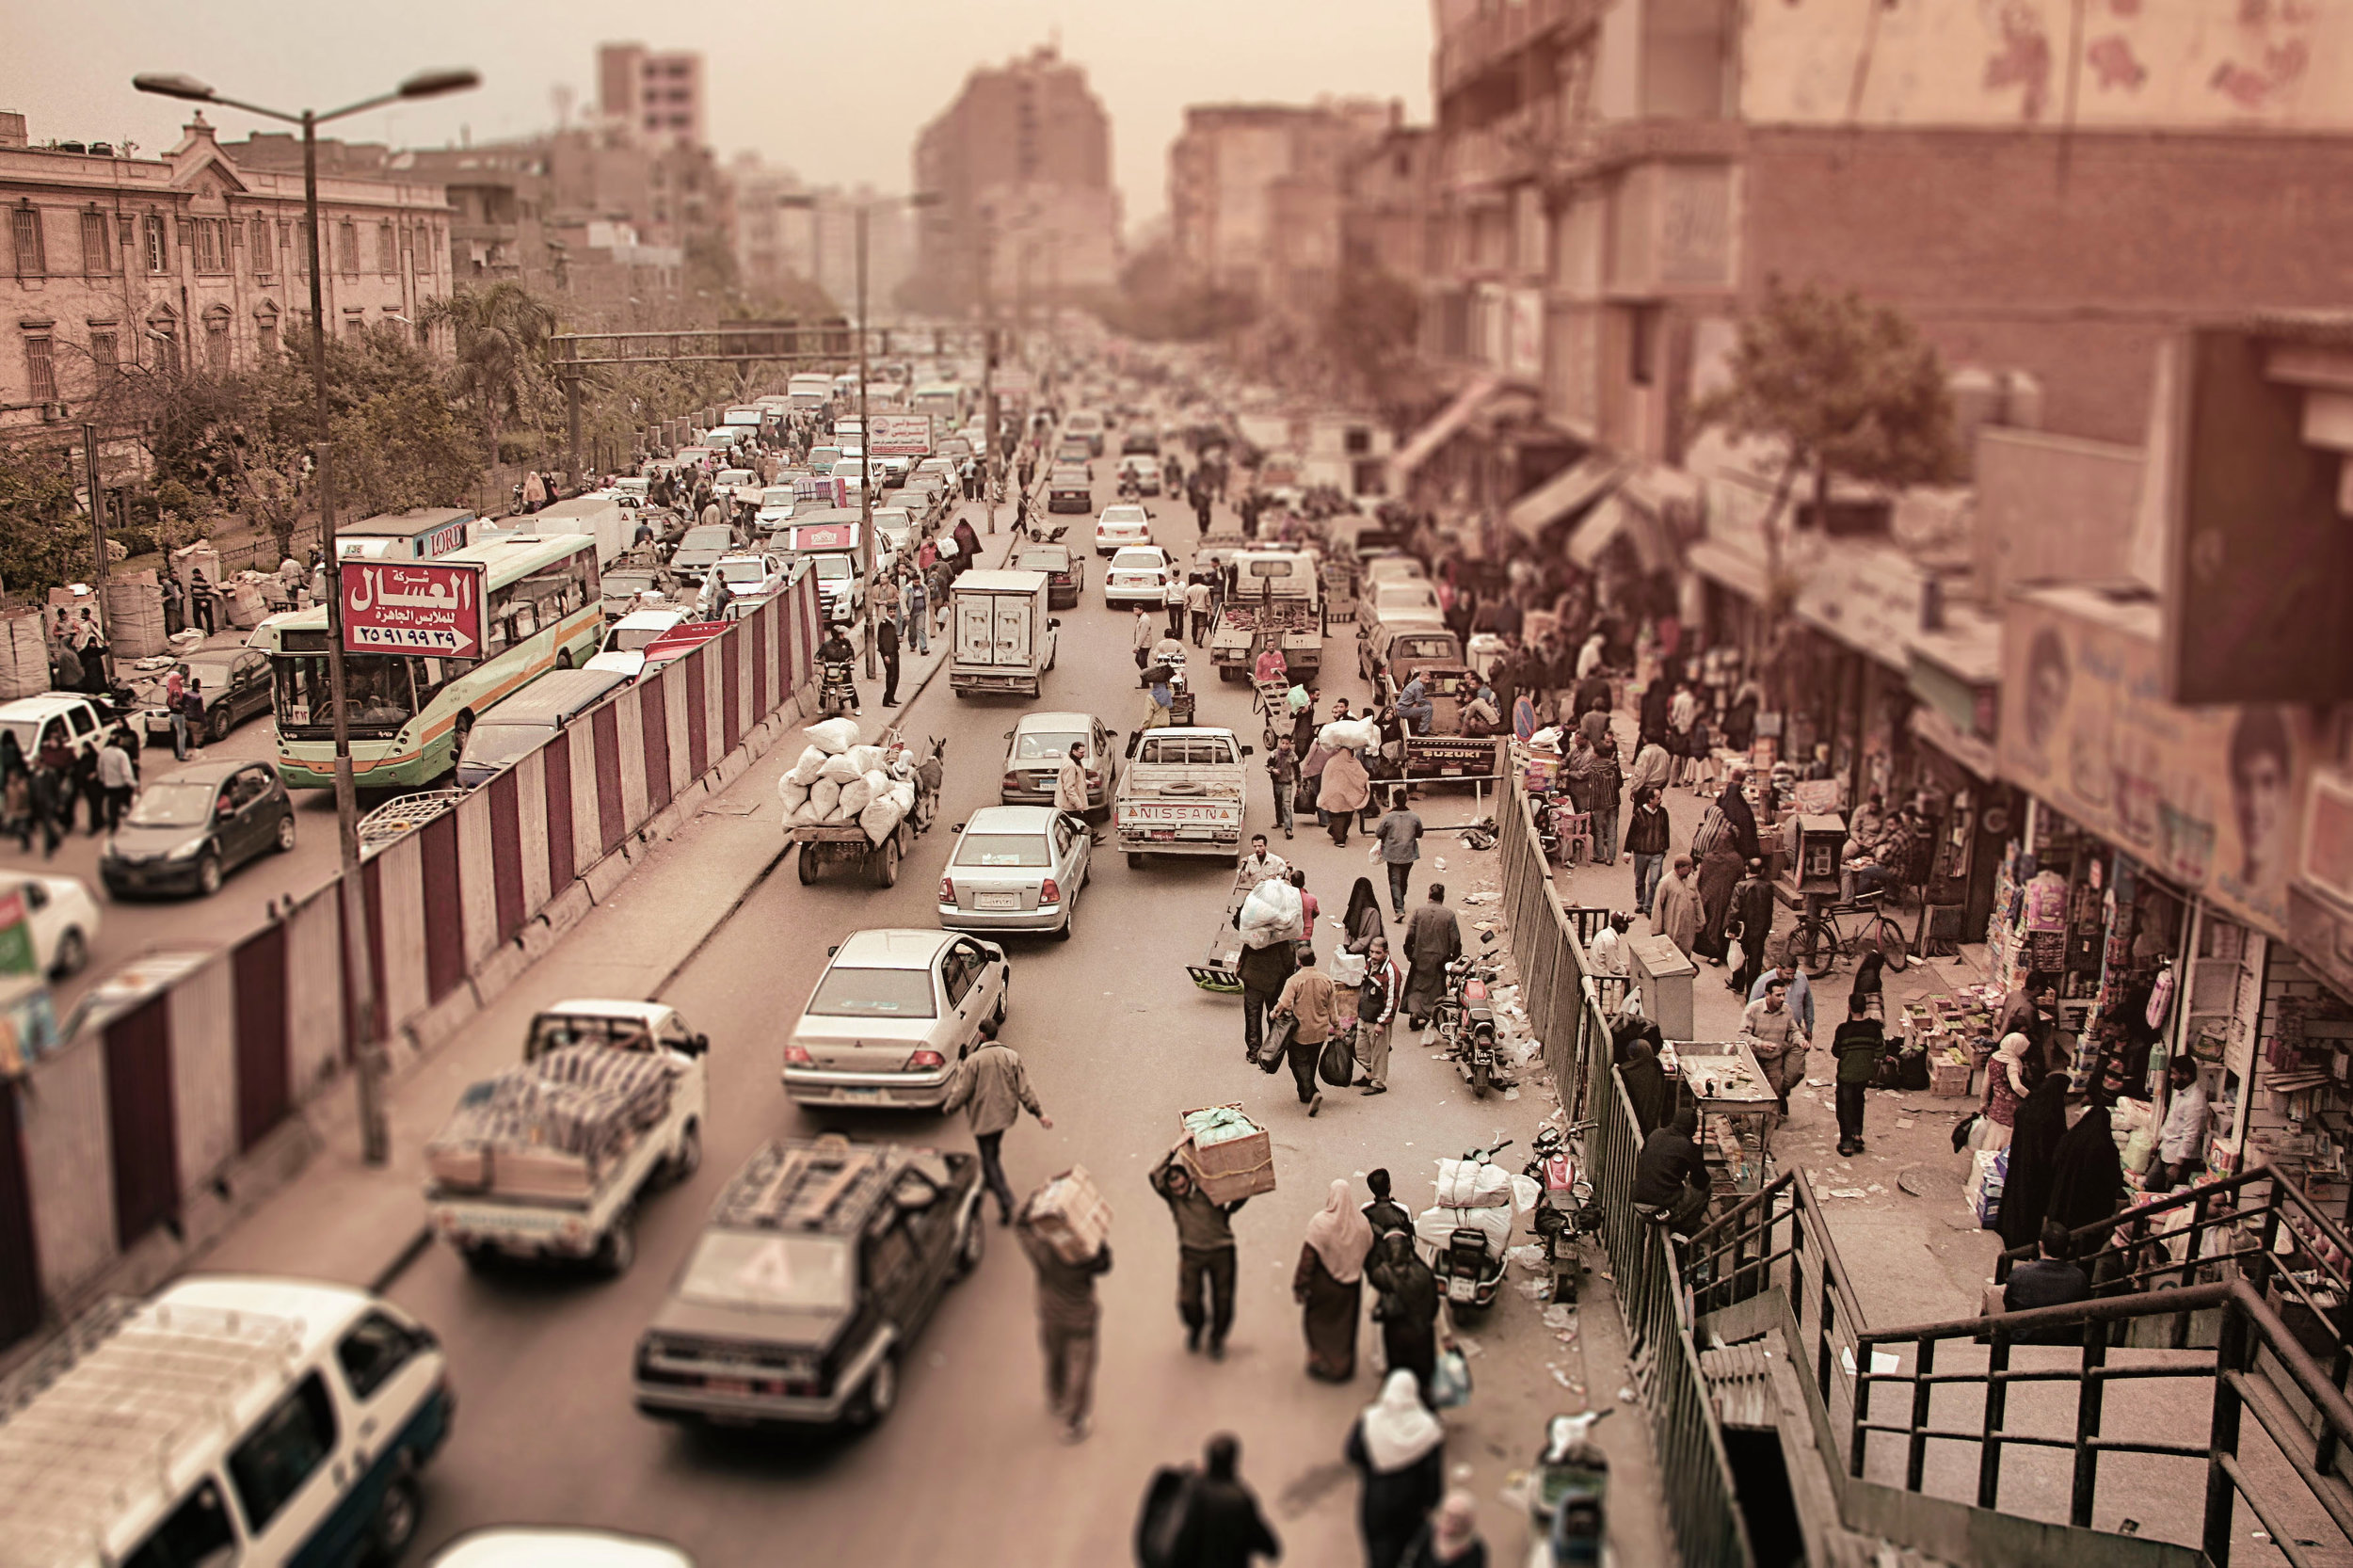 the traffic in cairo is insane! -